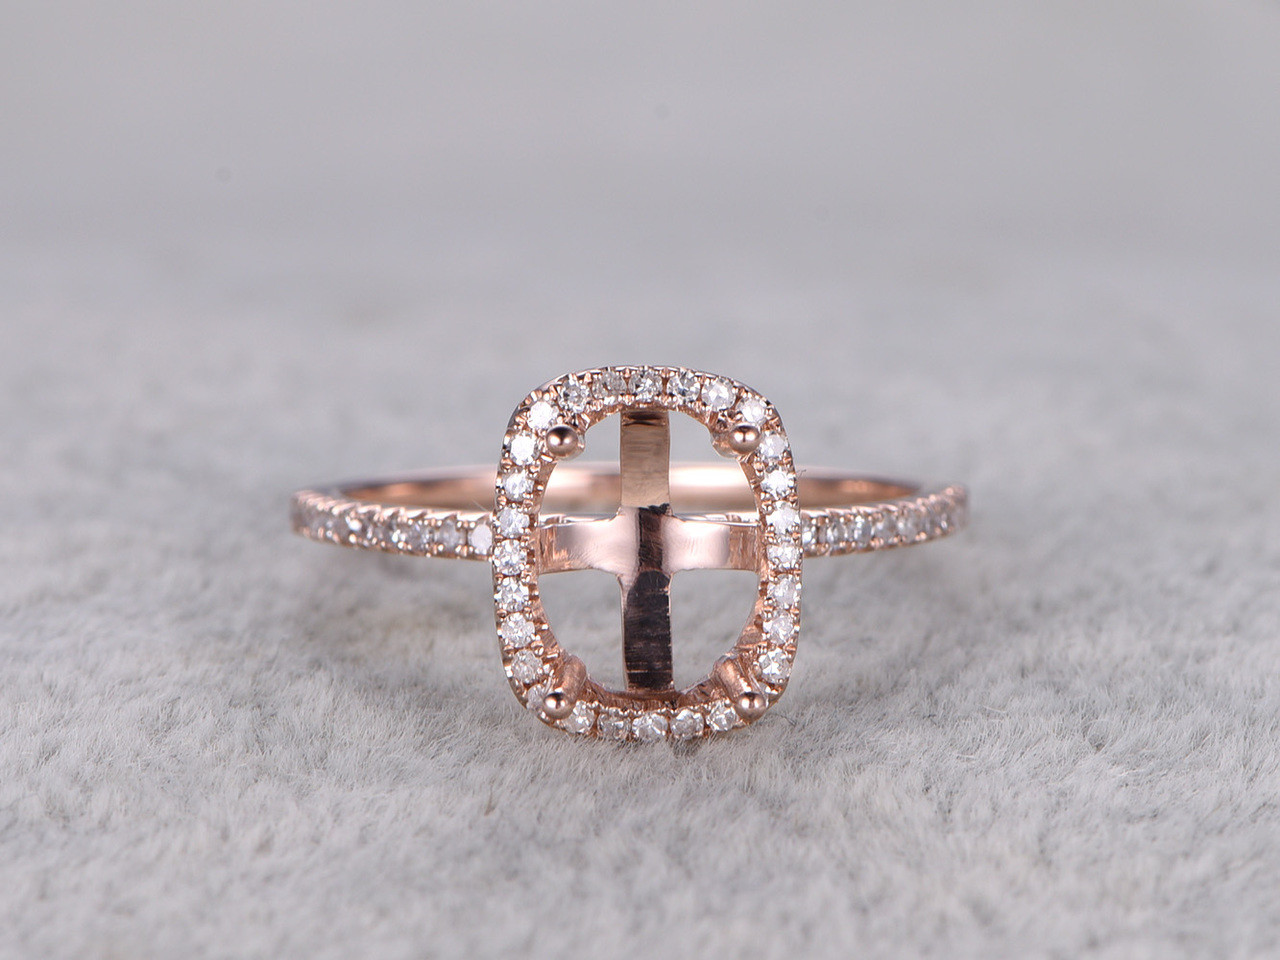 6x8mm diamond engagement ring settings rose gold oval cut for Diamond wedding ring settings